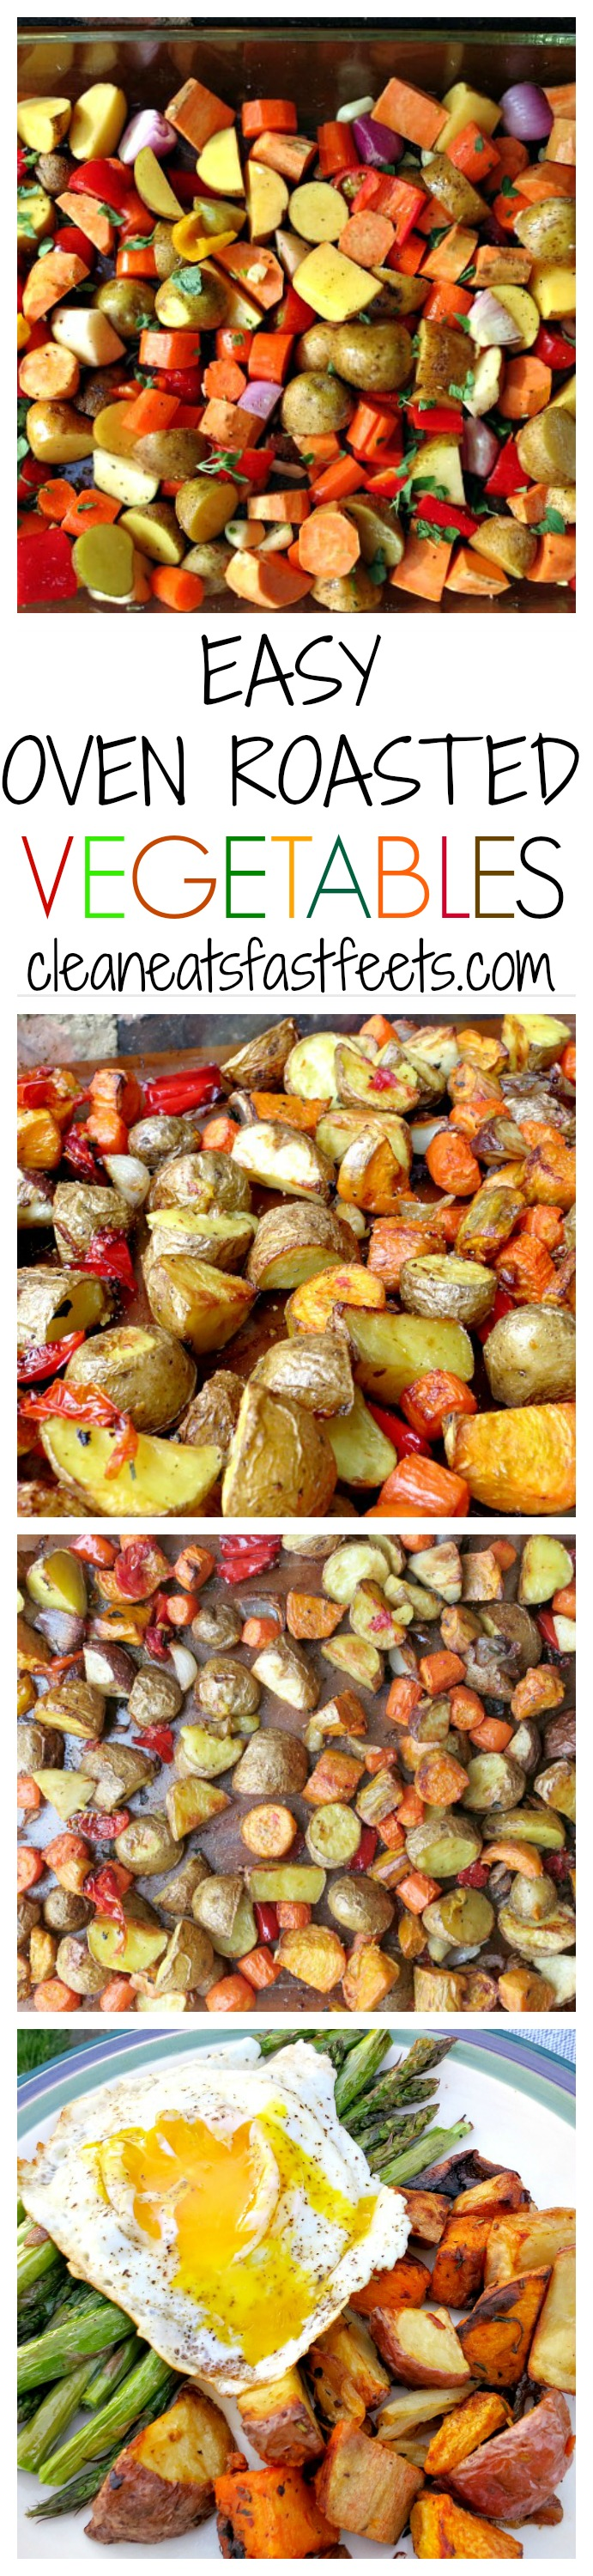 A quick and easy method to roast veggies in the oven. Make a big batch one time and live off the leftovers all week.